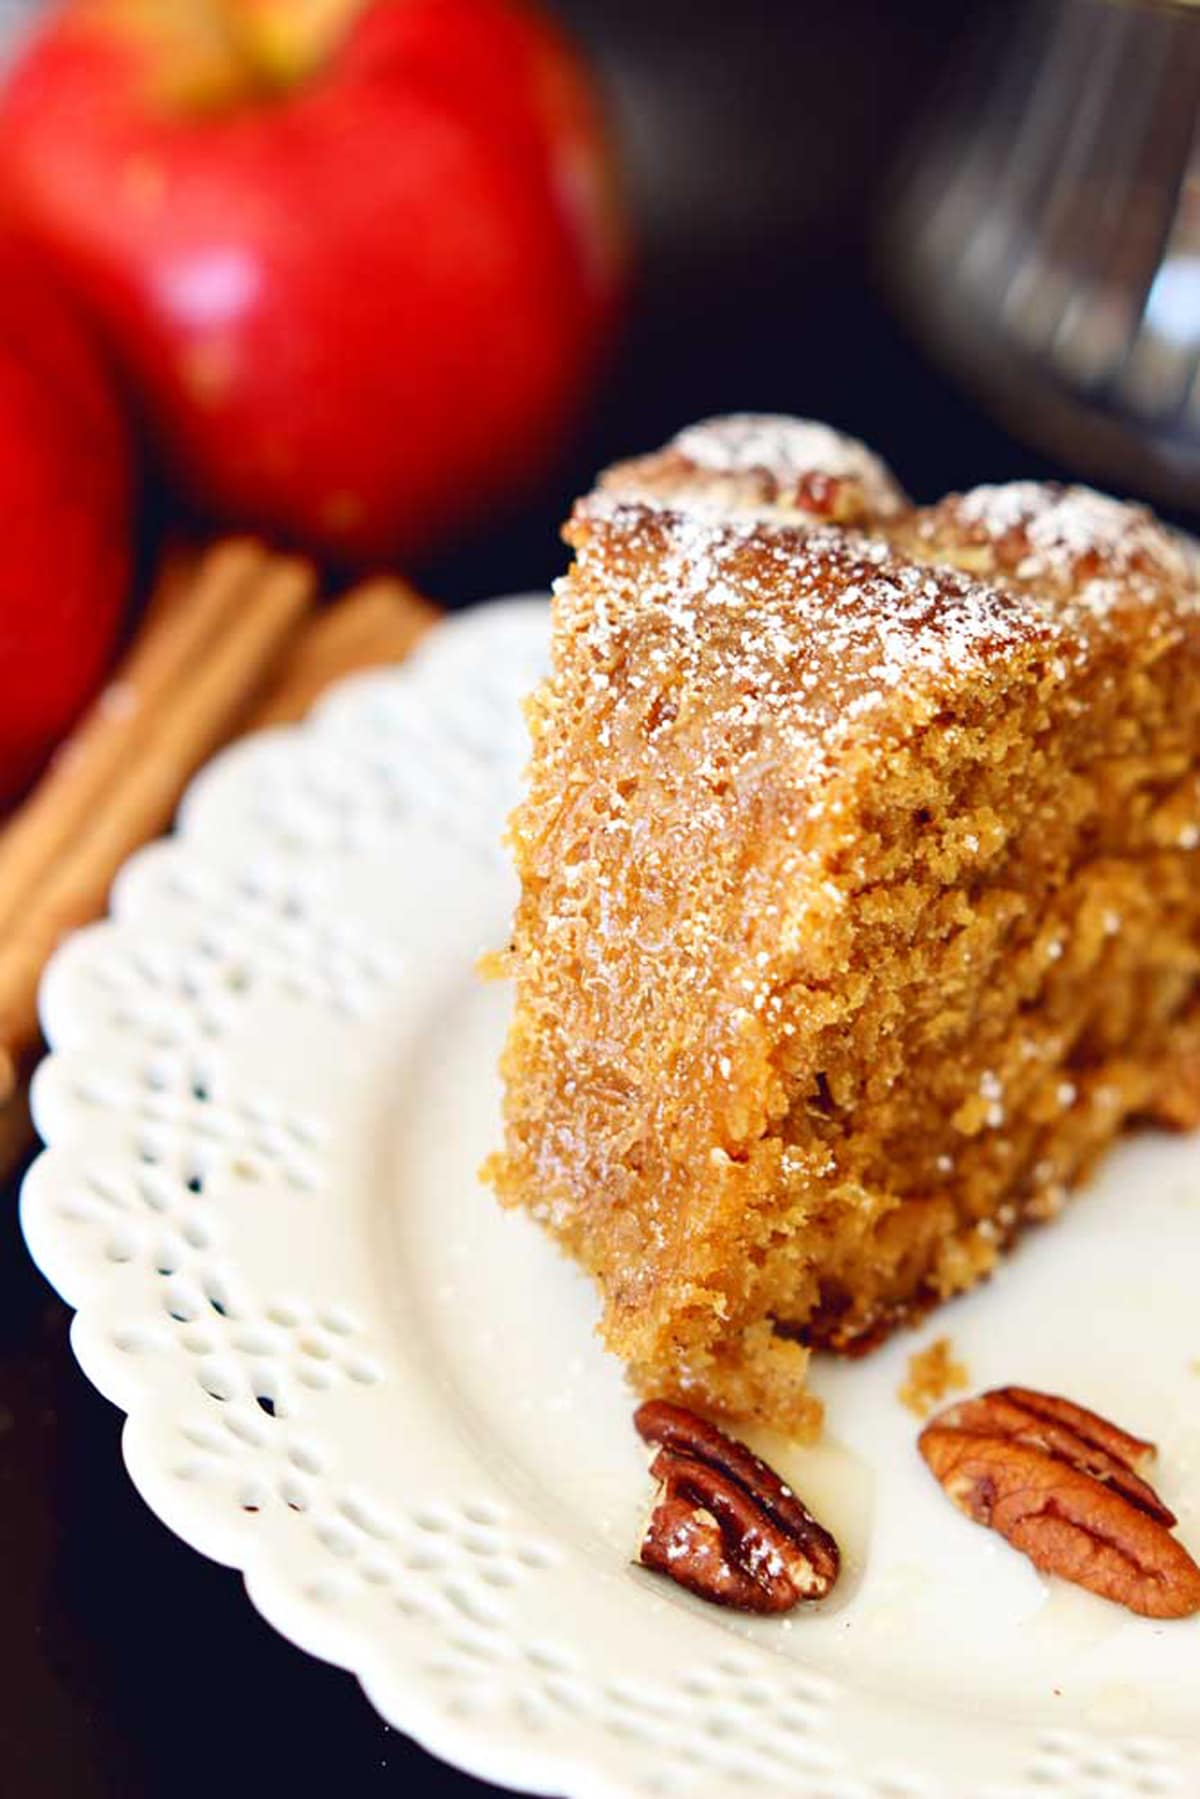 A piece of sliced apple pumpkin bundt cake sitting on a white lace plate, 2 pecans on a plate with apples and cinnamon sticks on black table.